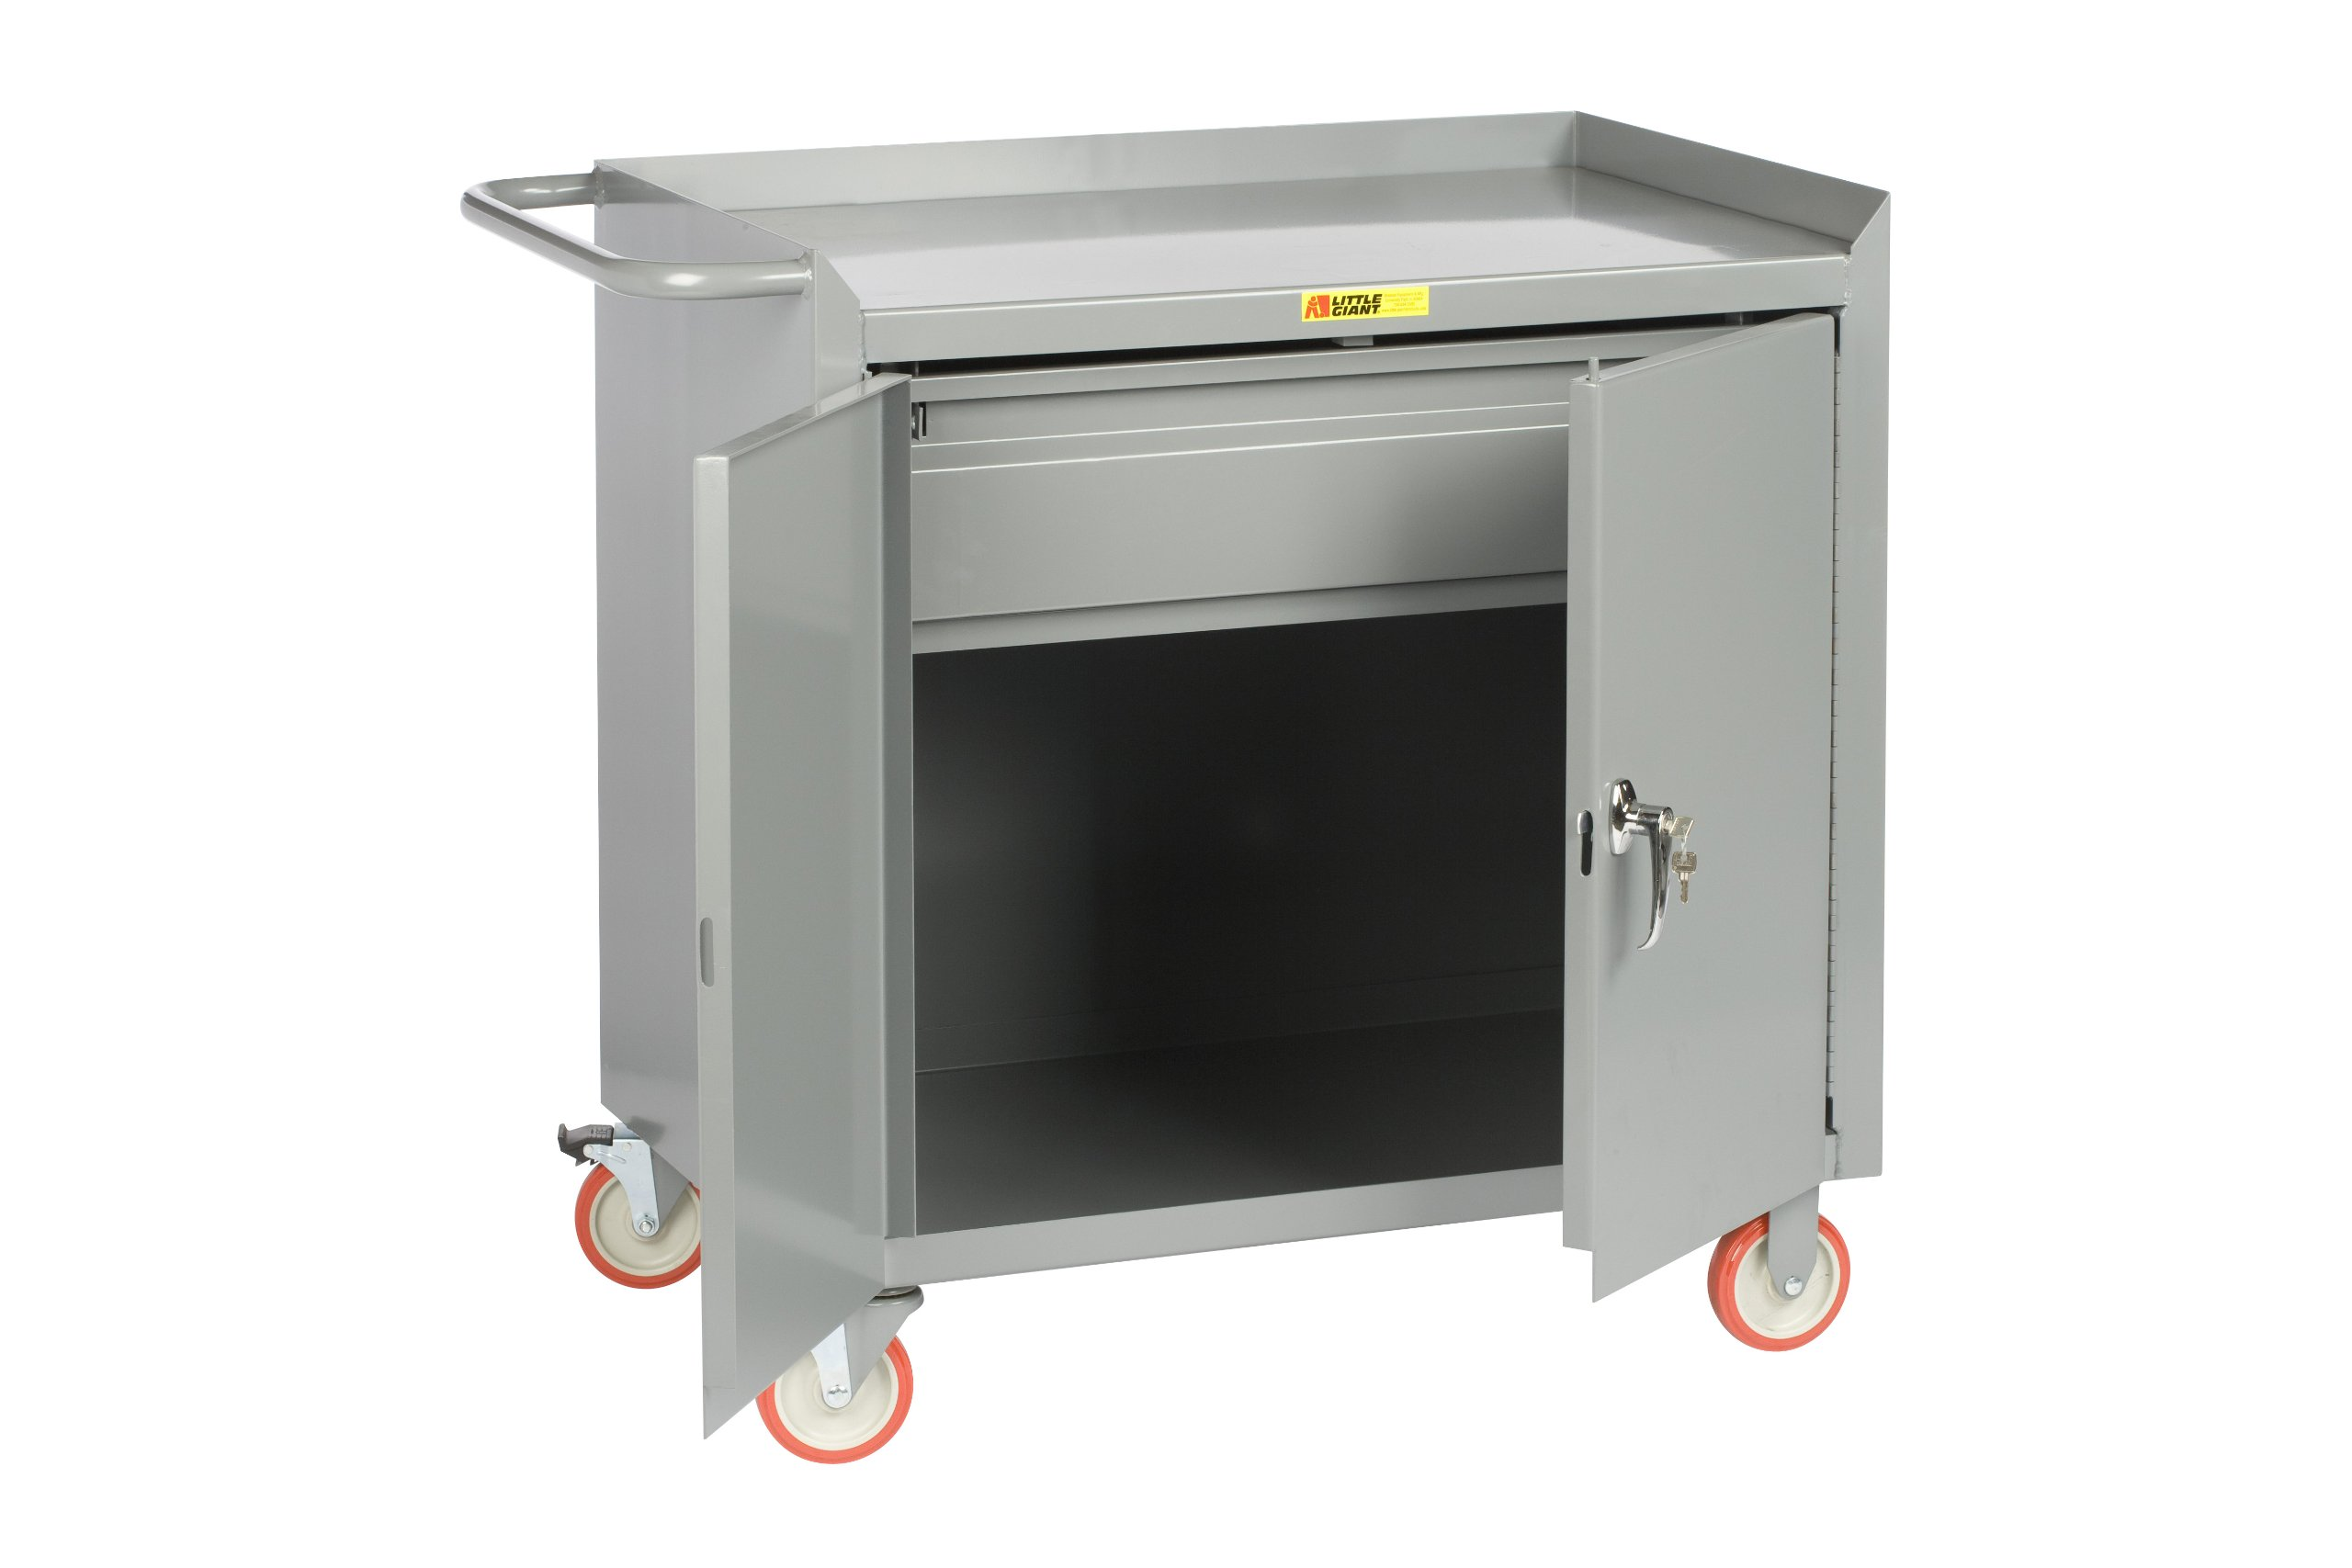 Little Giant MC2D-2436-HDTL Steel Mobile Bench Cabinet with Doors and Heavy Duty Drawer, Gray, 1200 lbs Load Capacity, 38'' Height x 24'' Width x 36'' Length